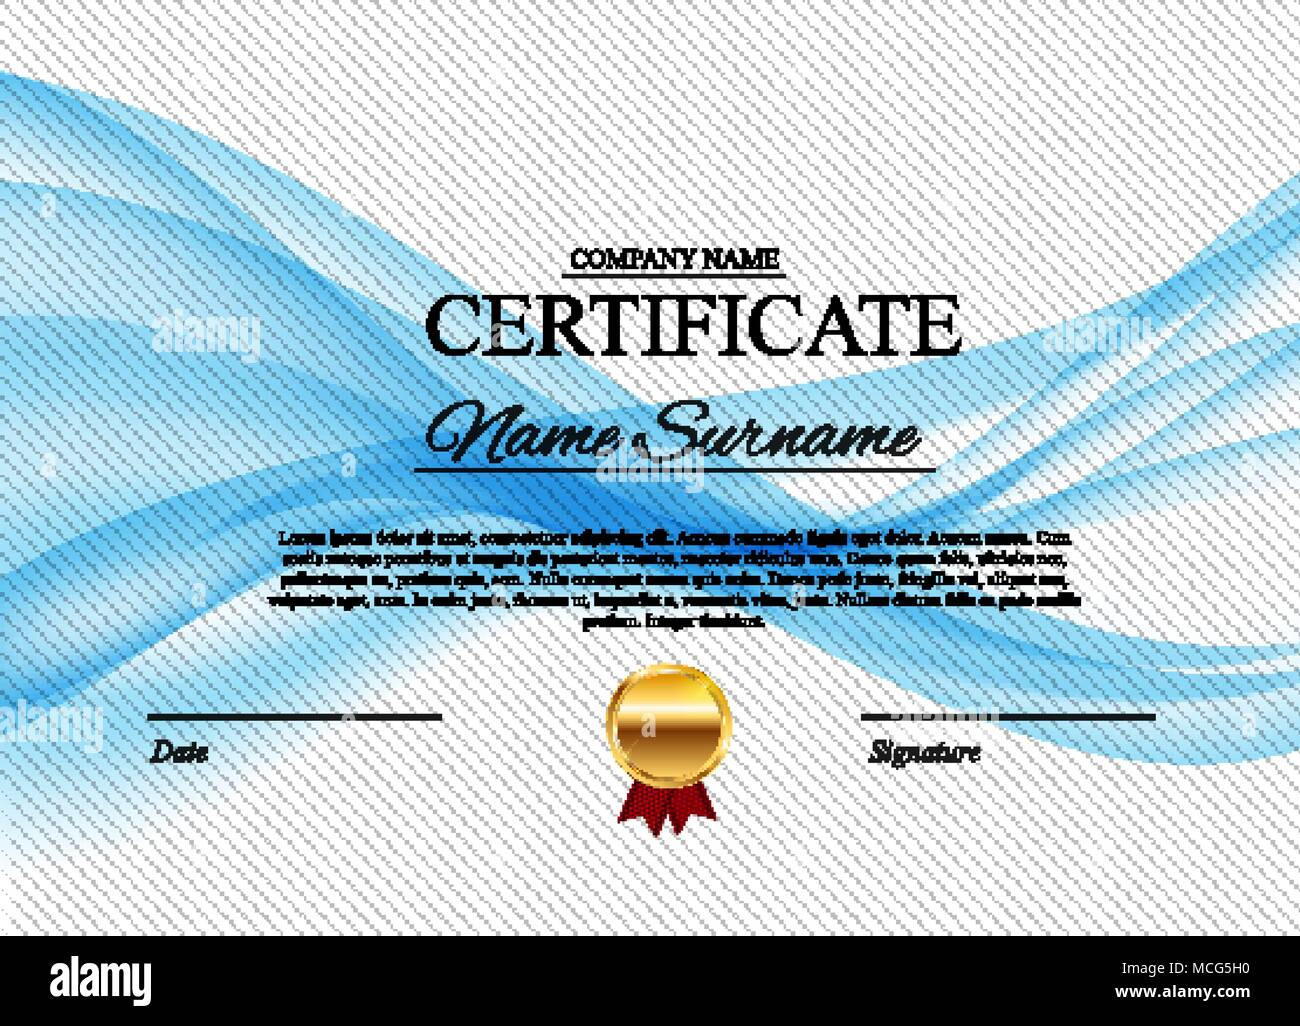 Diploma Template Stockfotos & Diploma Template Bilder - Alamy